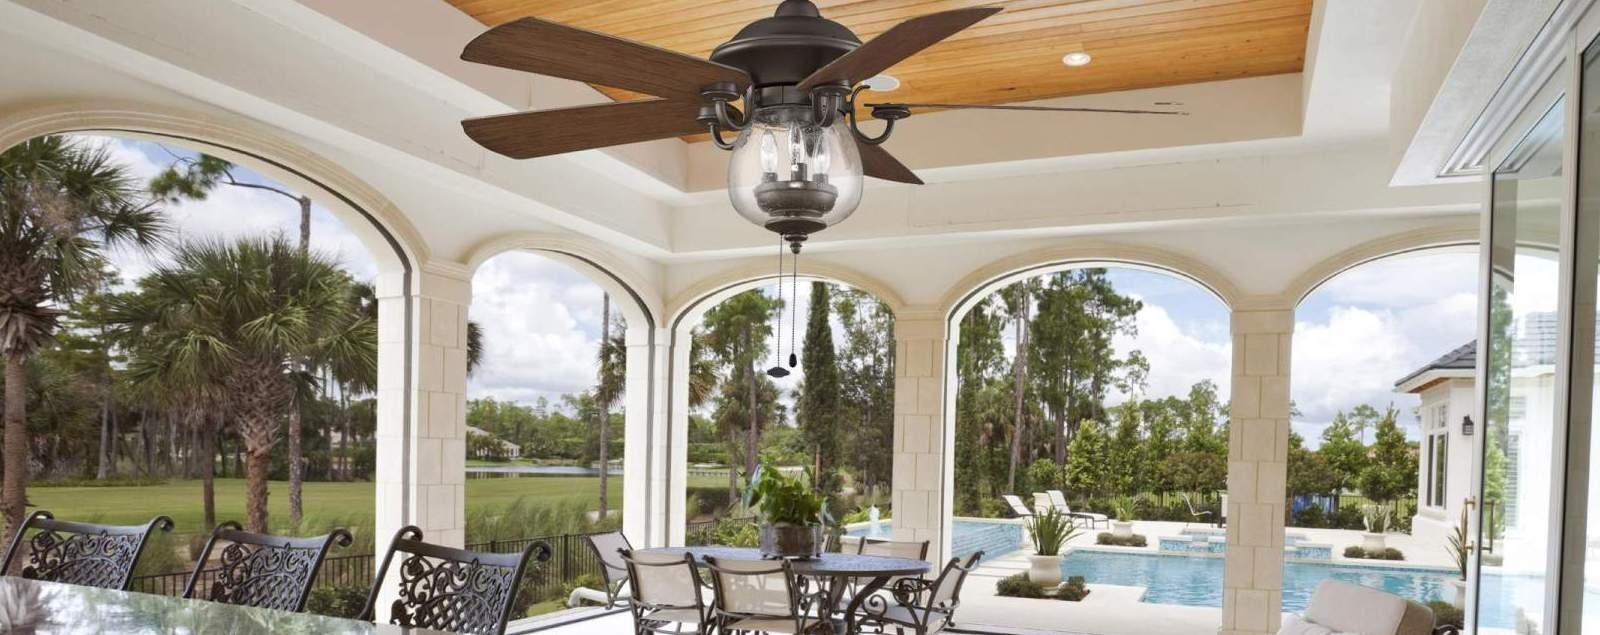 Mission Style Outdoor Ceiling Fans With Lights With 2019 Outdoor Ceiling Fans – Shop Wet, Dry, And Damp Rated Outdoor Fans (View 13 of 20)